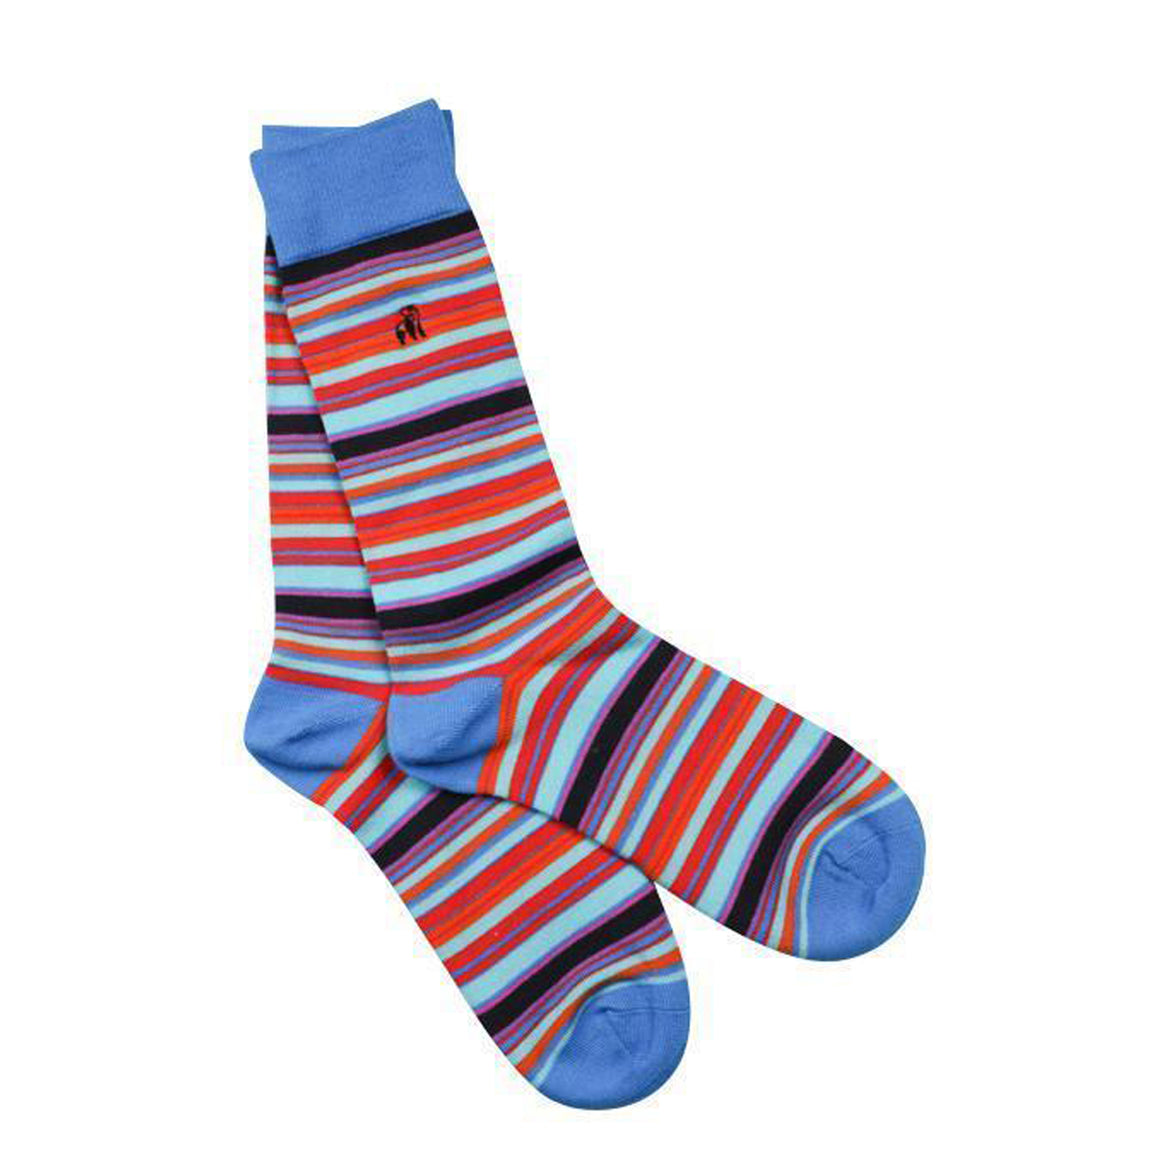 Narrow Striped Bamboo Socks for Men in Blue & Red